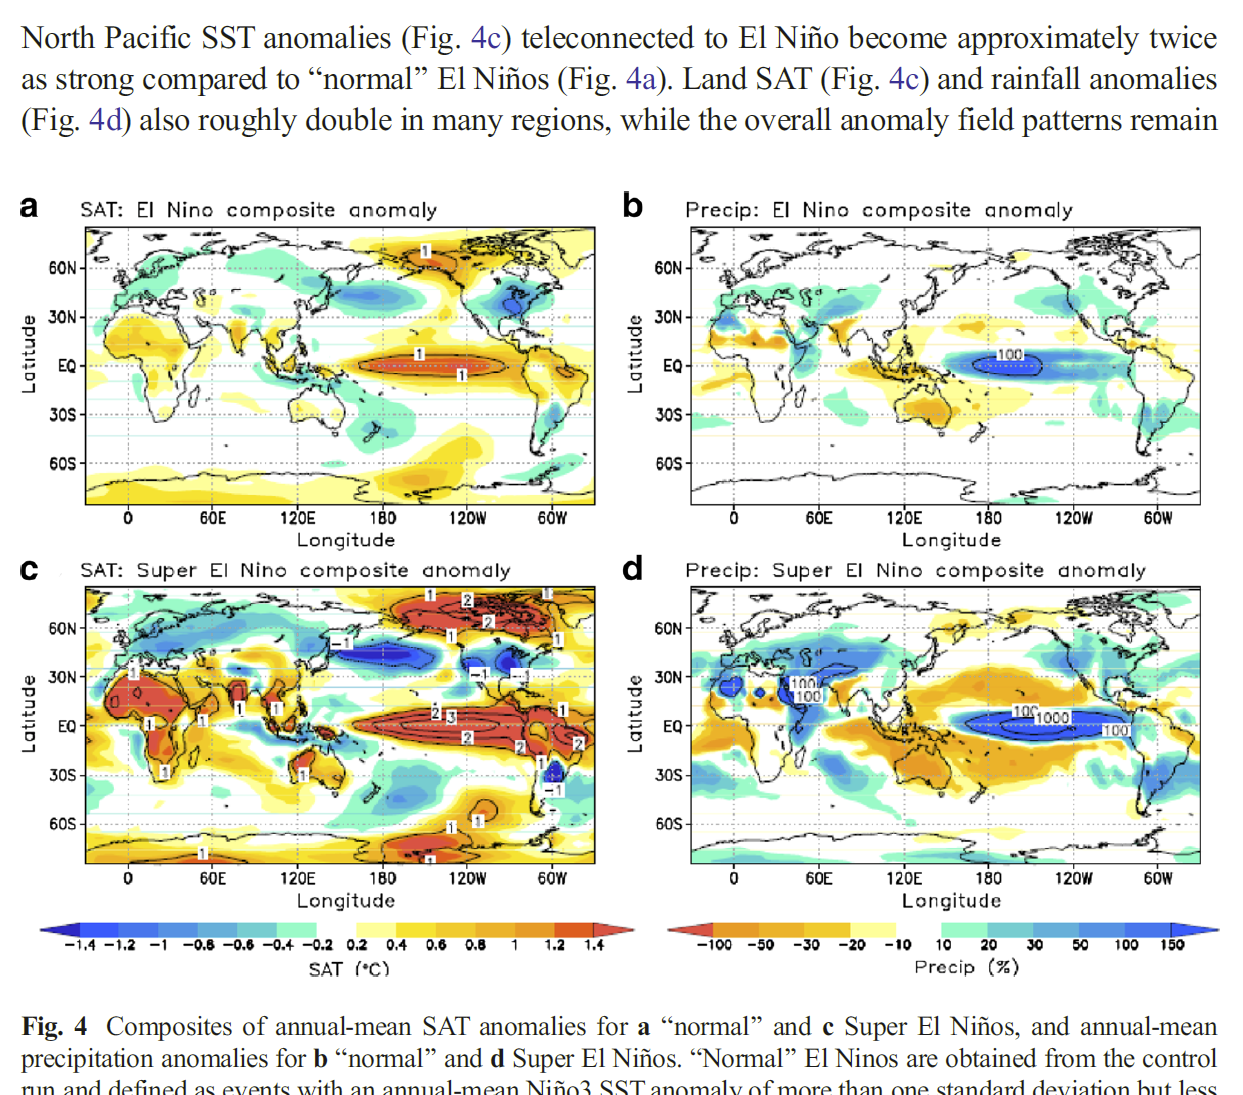 Super El Niños in response to global warming in a climate model